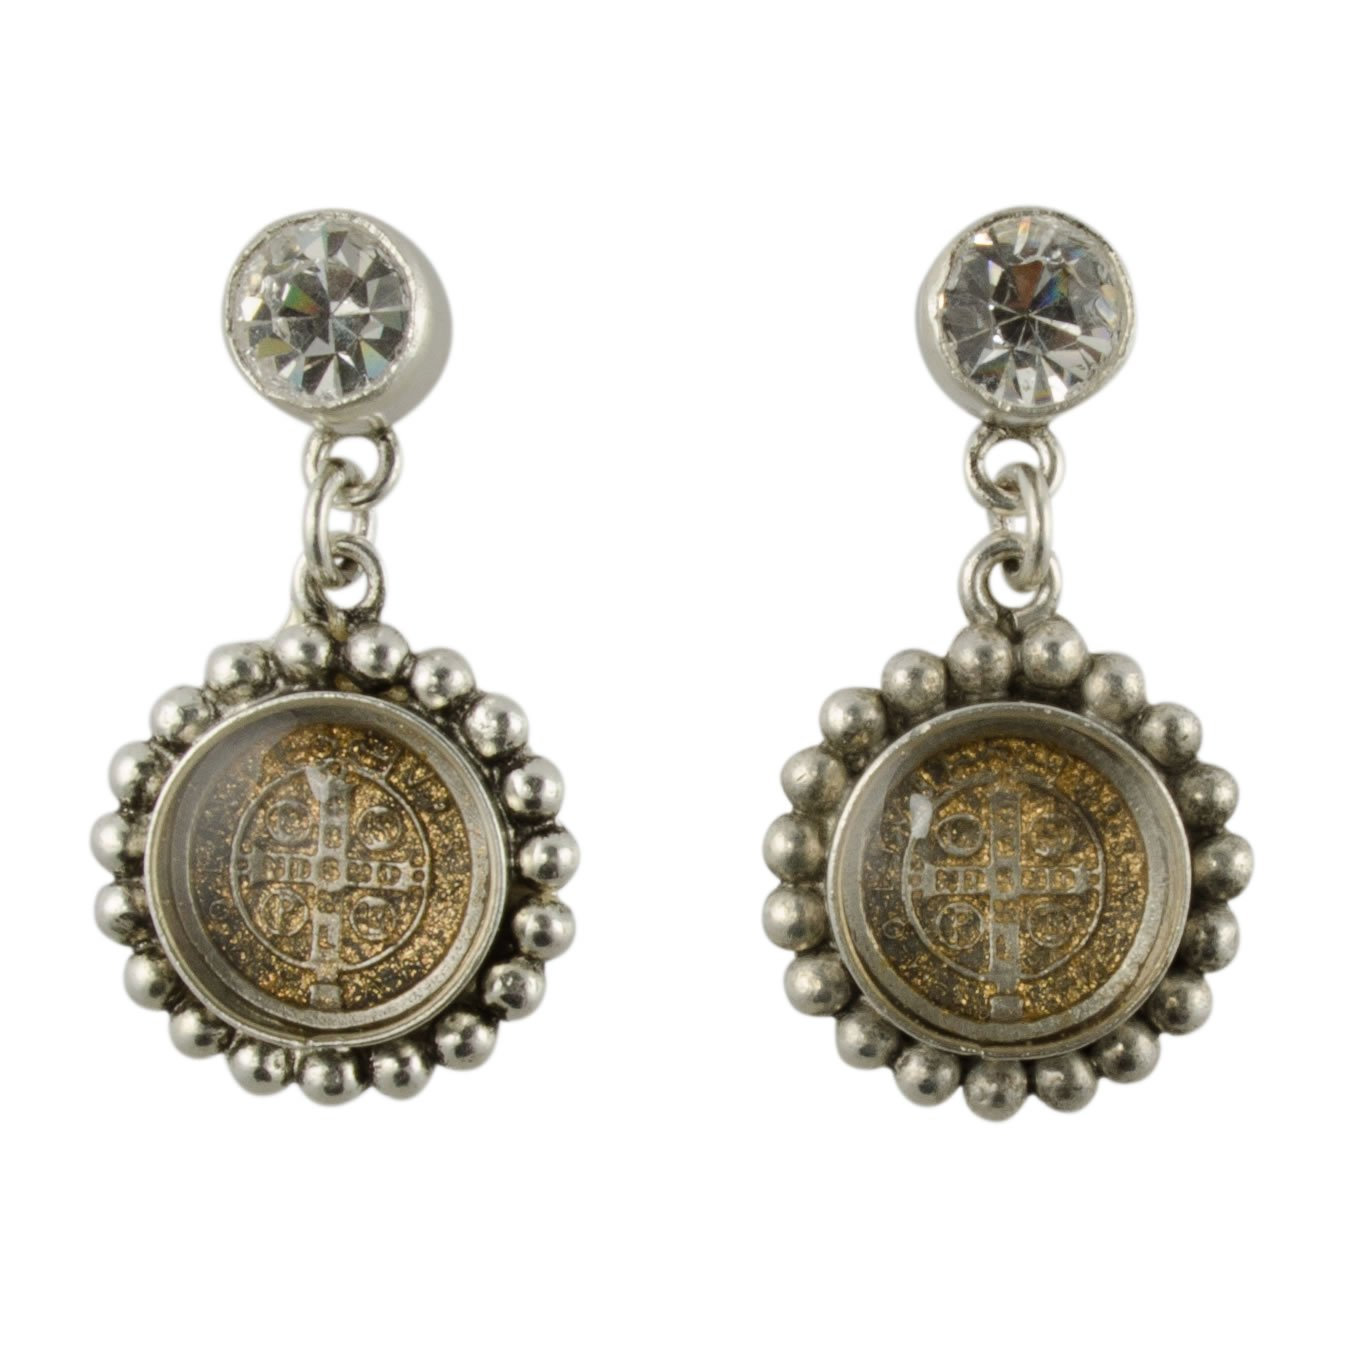 San Benito Magdalena Post Earrings - Silver, Diamond Crystal - VSA - Virgins Saints Angels Jewelry